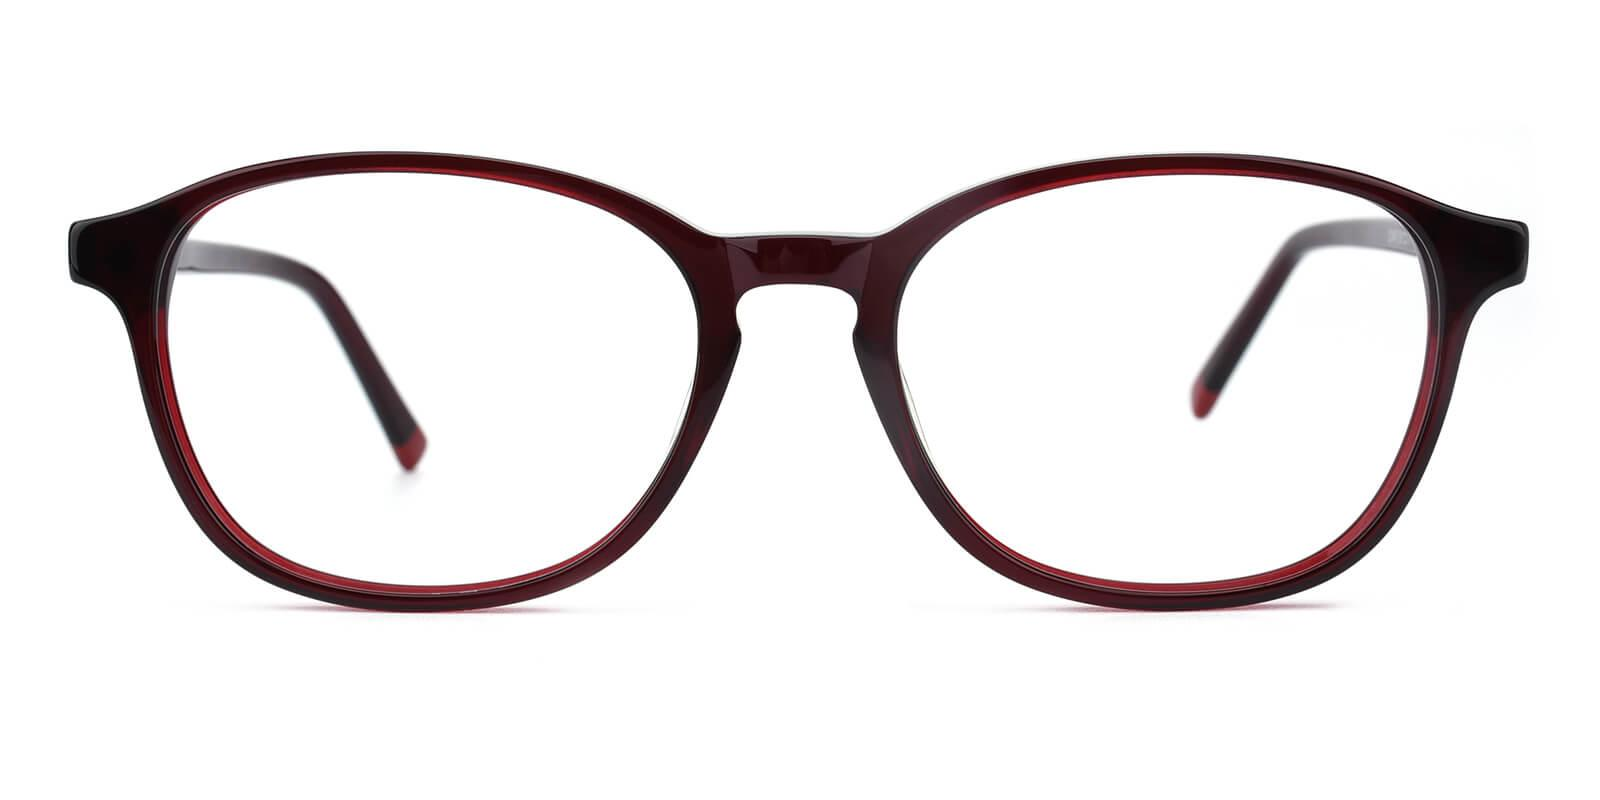 Lisbon-Brown-Square-Acetate-Eyeglasses-additional2